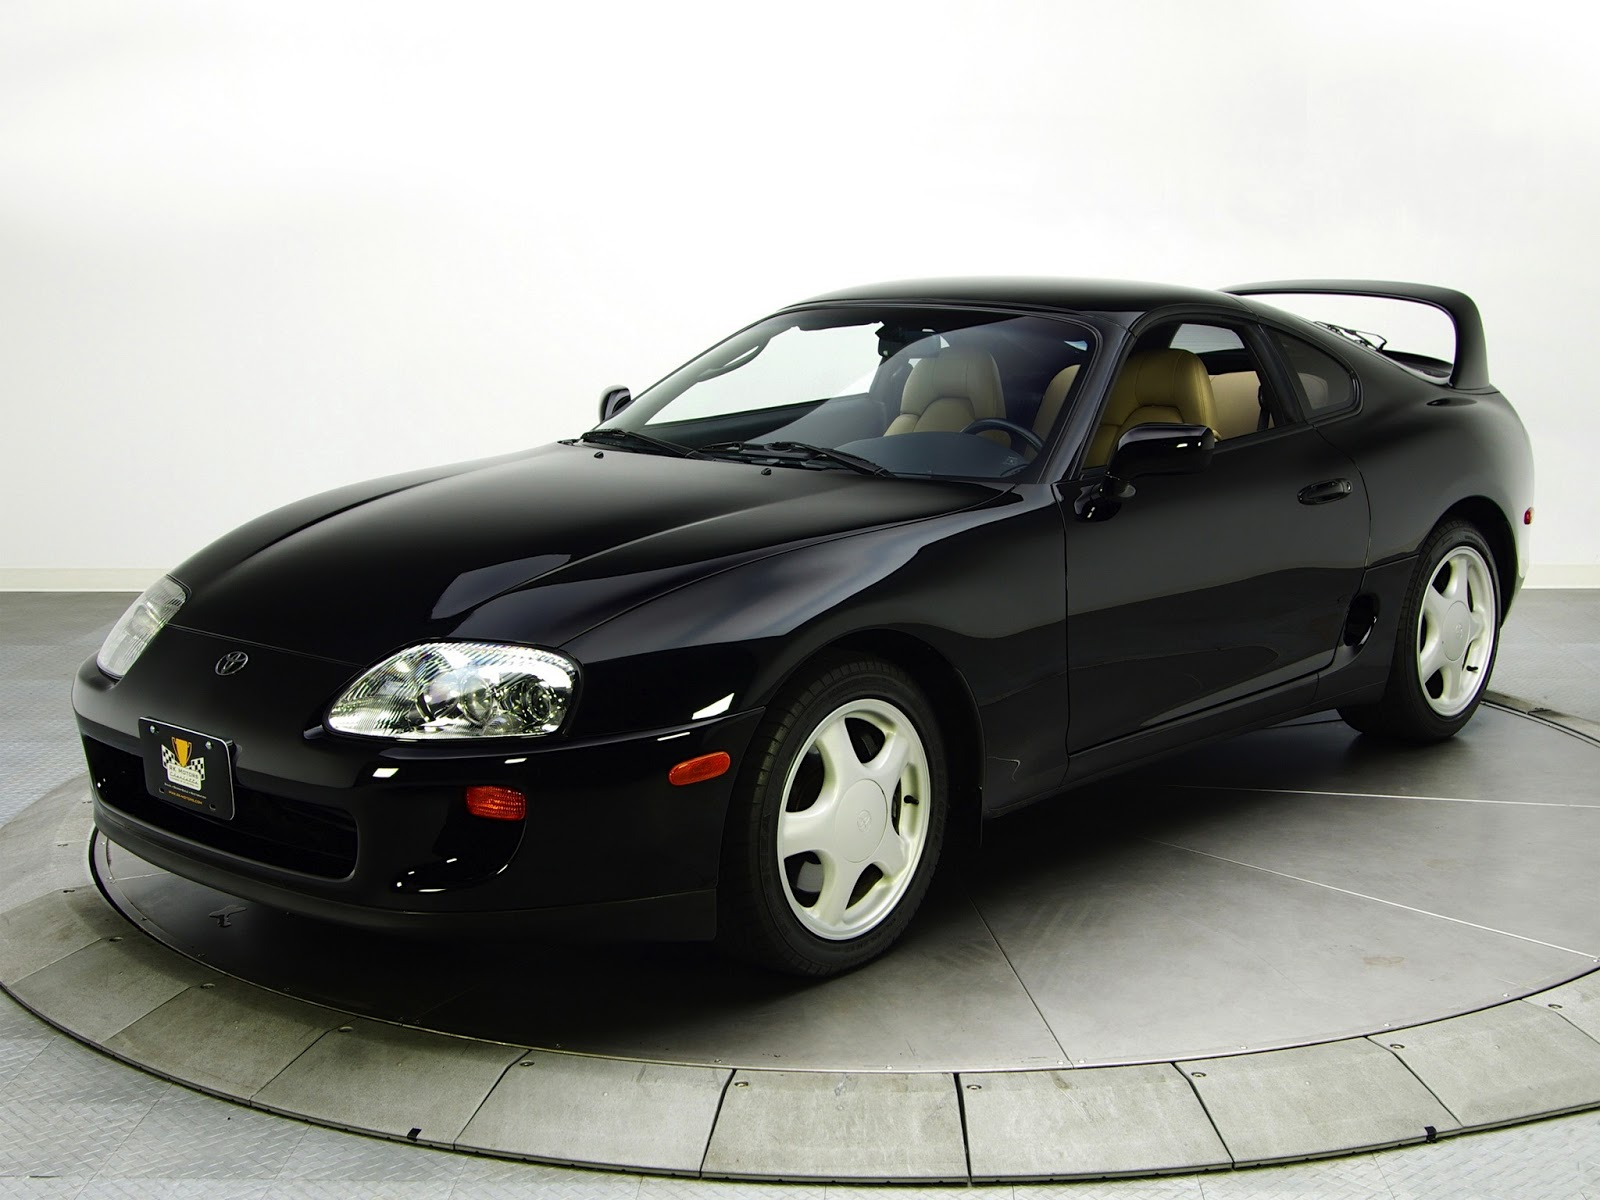 medium resolution of supra sales to canada ceased in 1996 and to the us in 1998 production continued in japan until august 2002 ceasing owing to restrictive emission